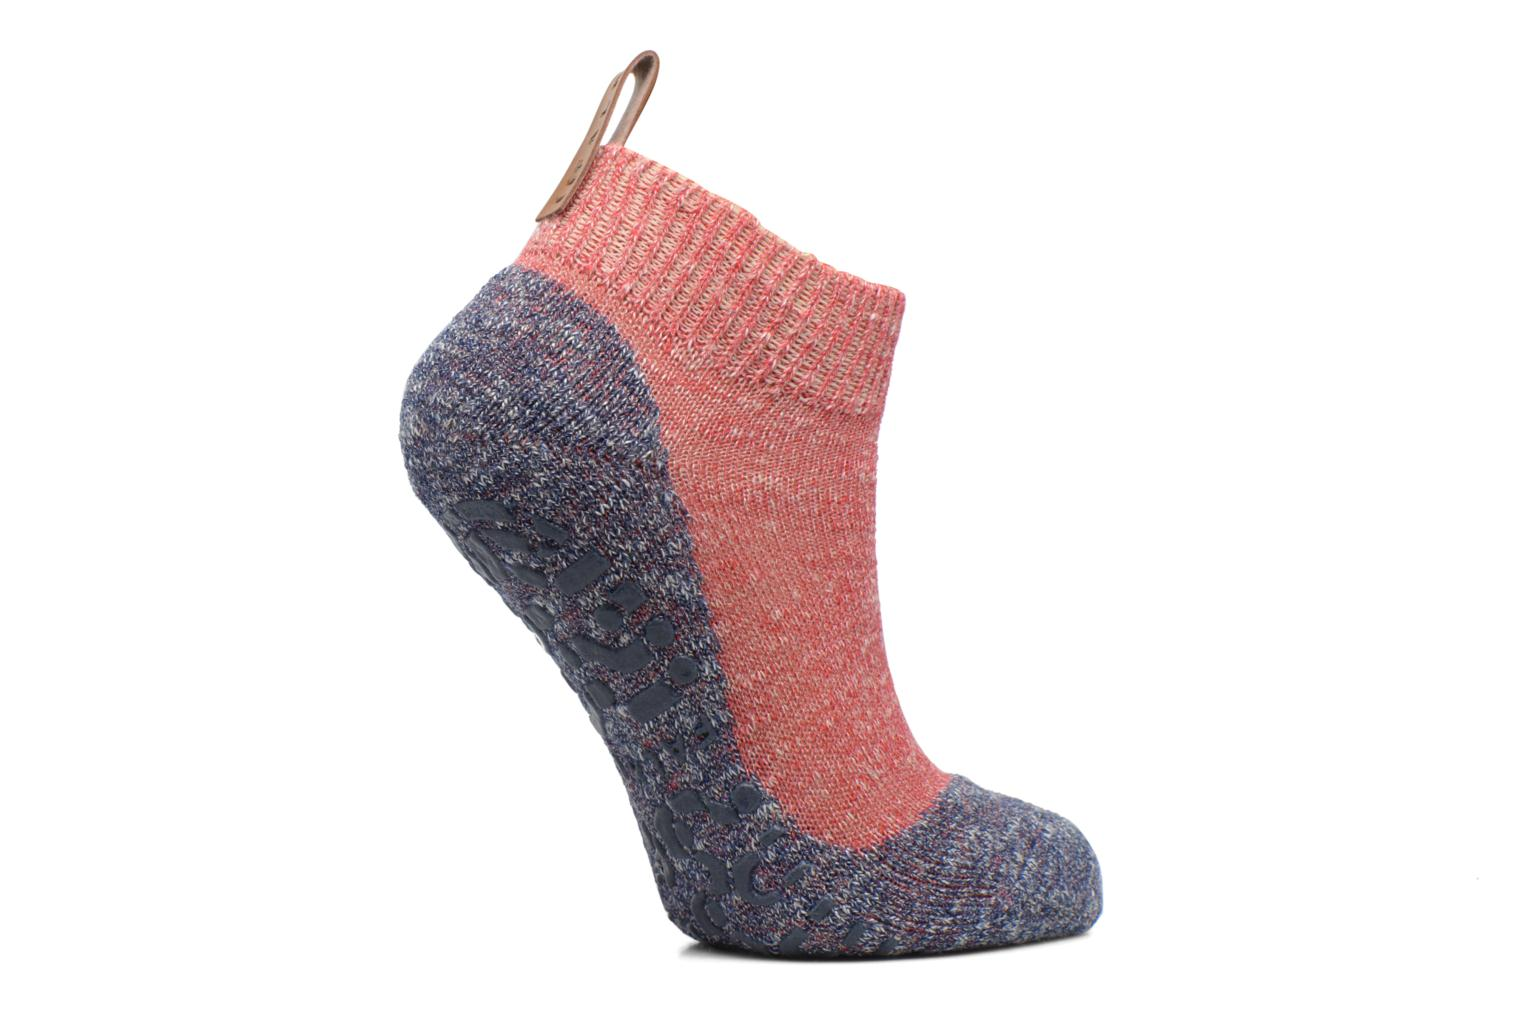 Chaussons-chaussettes Lodge Catspads 8220 BACCARA